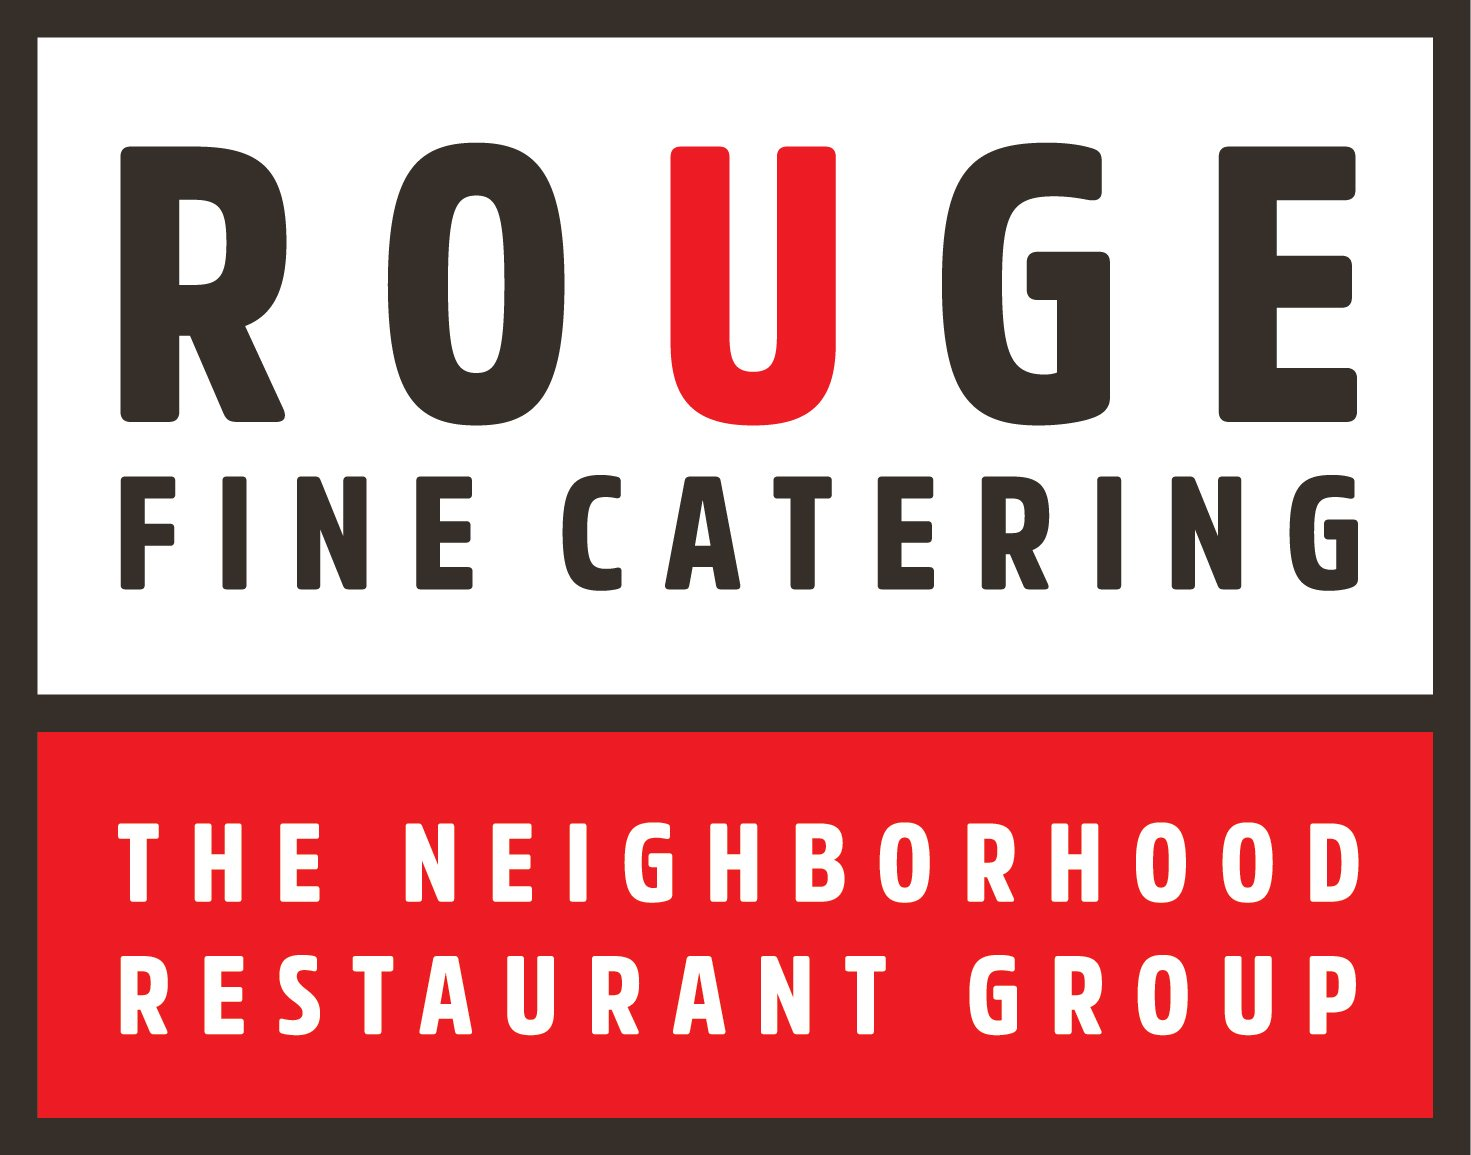 rouge-fine-catering-logo